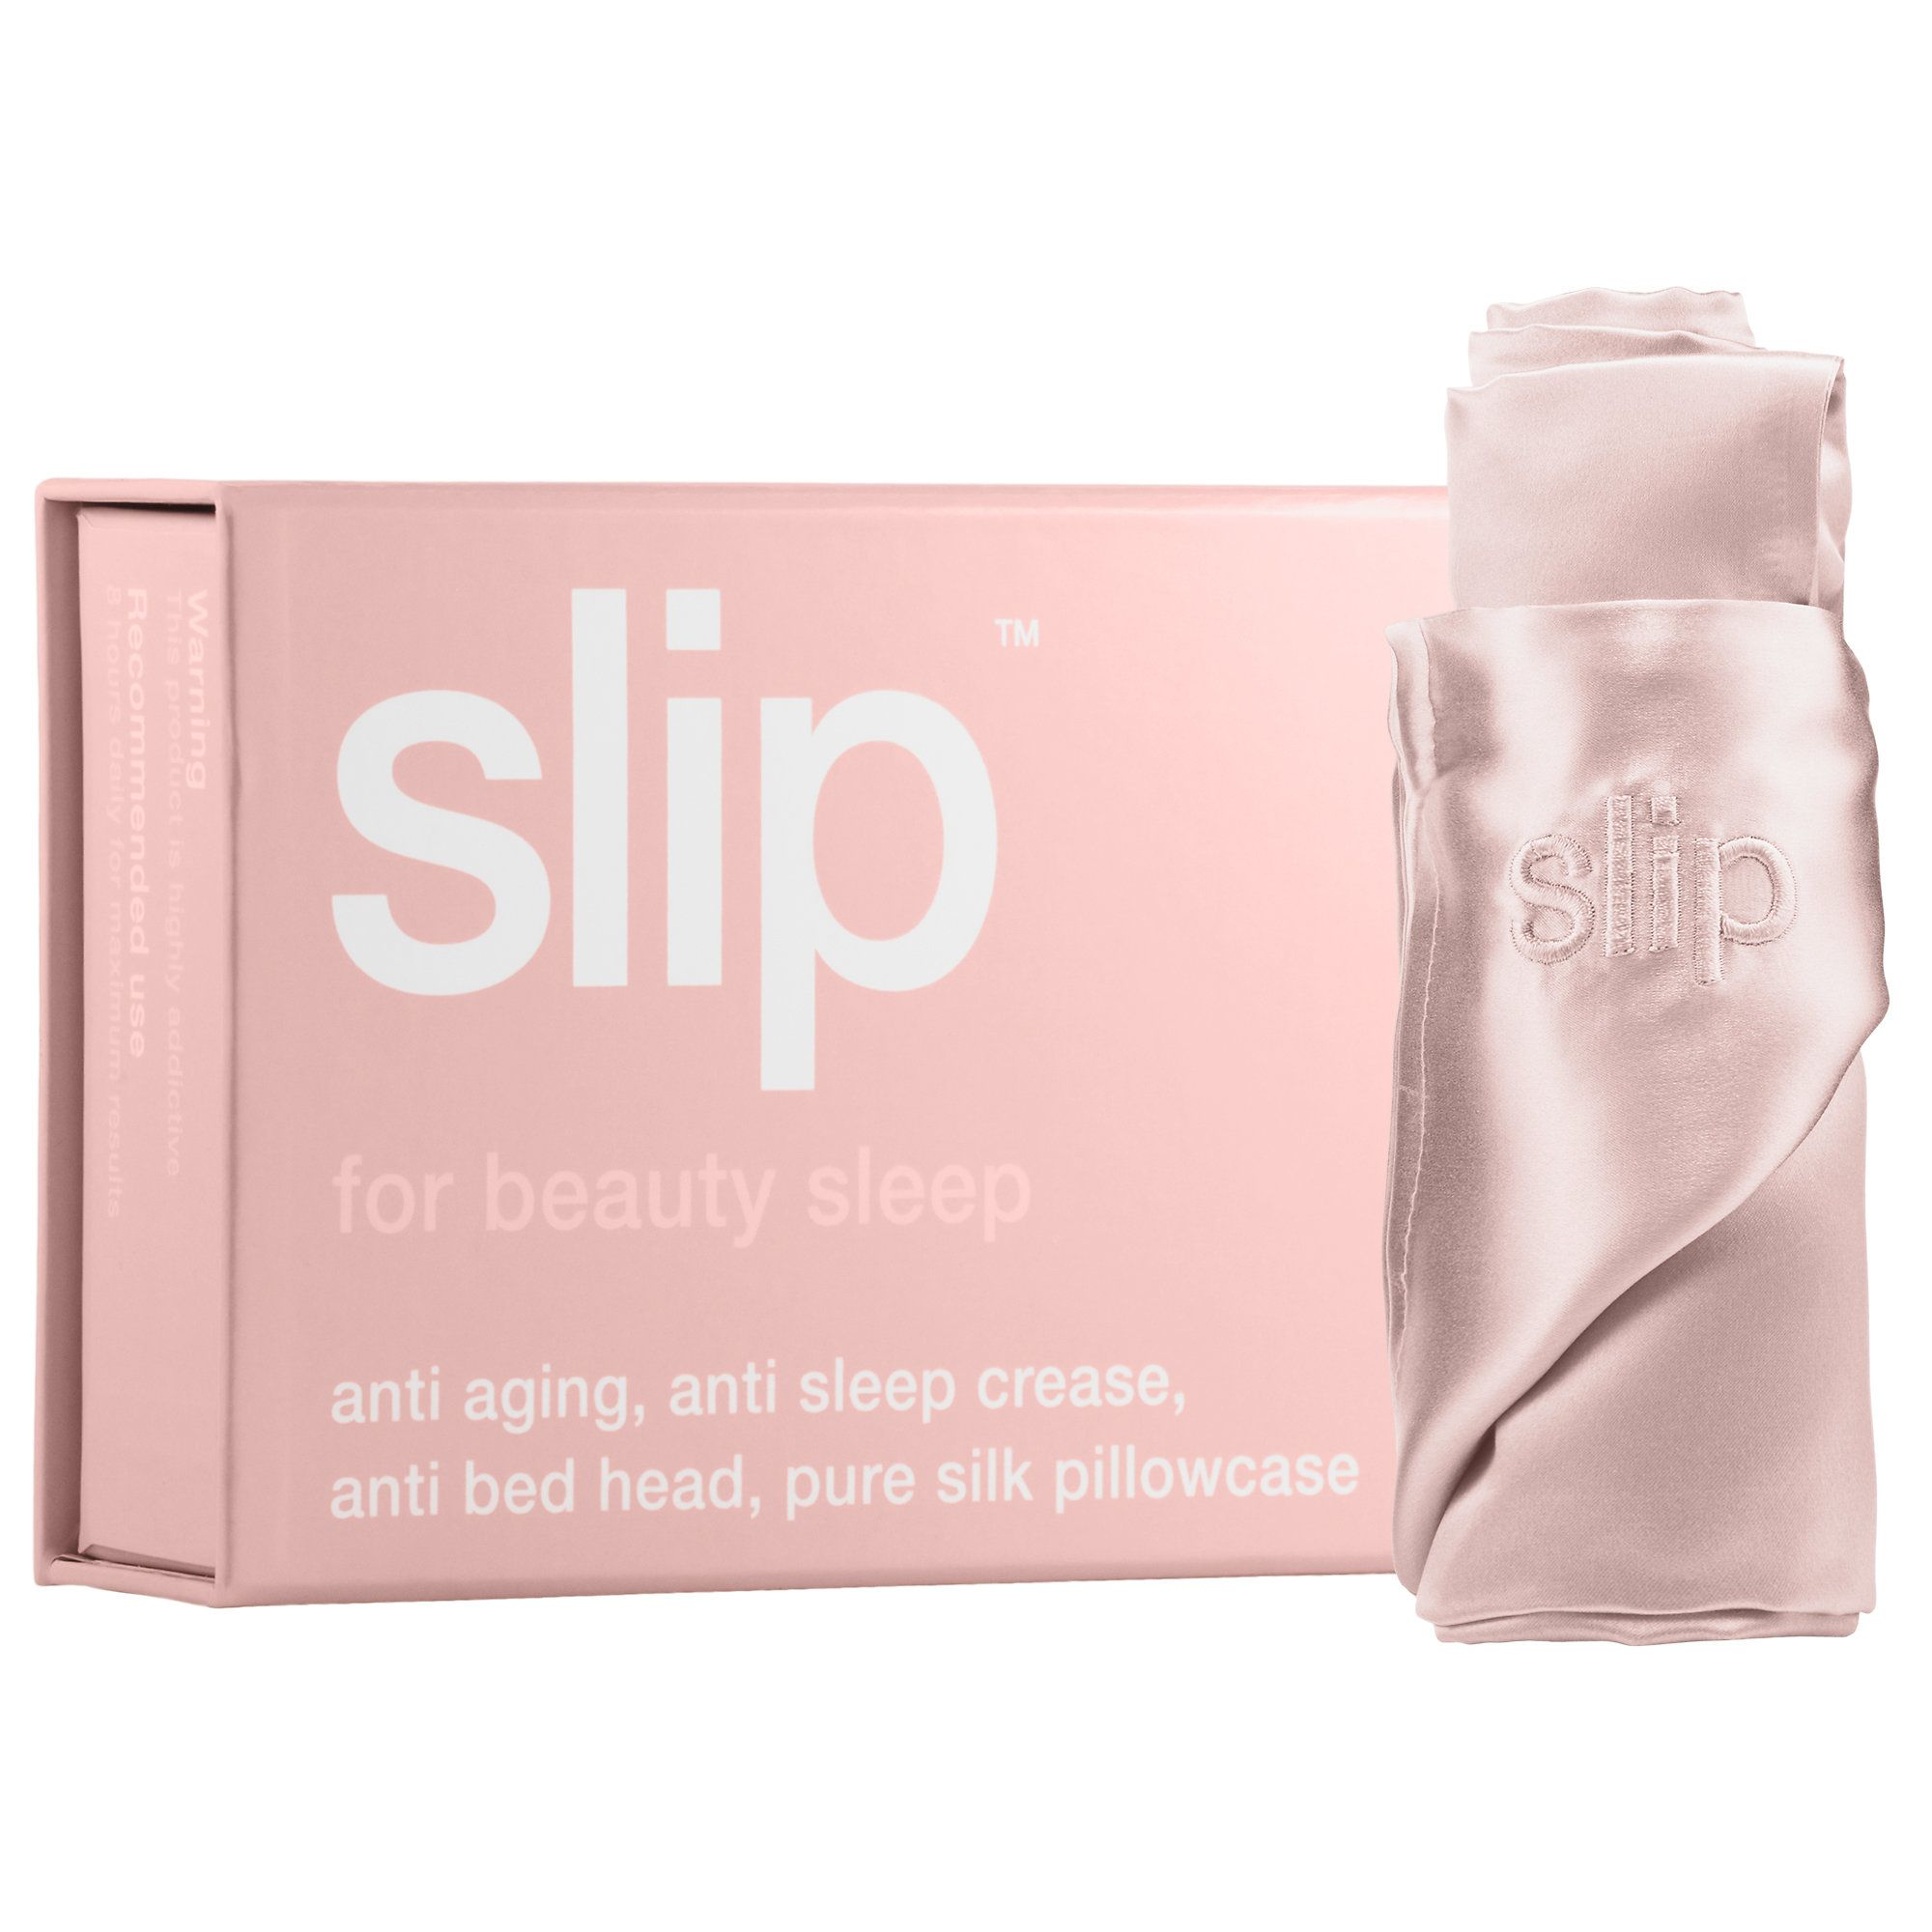 Slip Pillowcase Review Stunning Shop Slip Beauty's Queen Silk Pillowcase At Sephorathe Antiaging Review